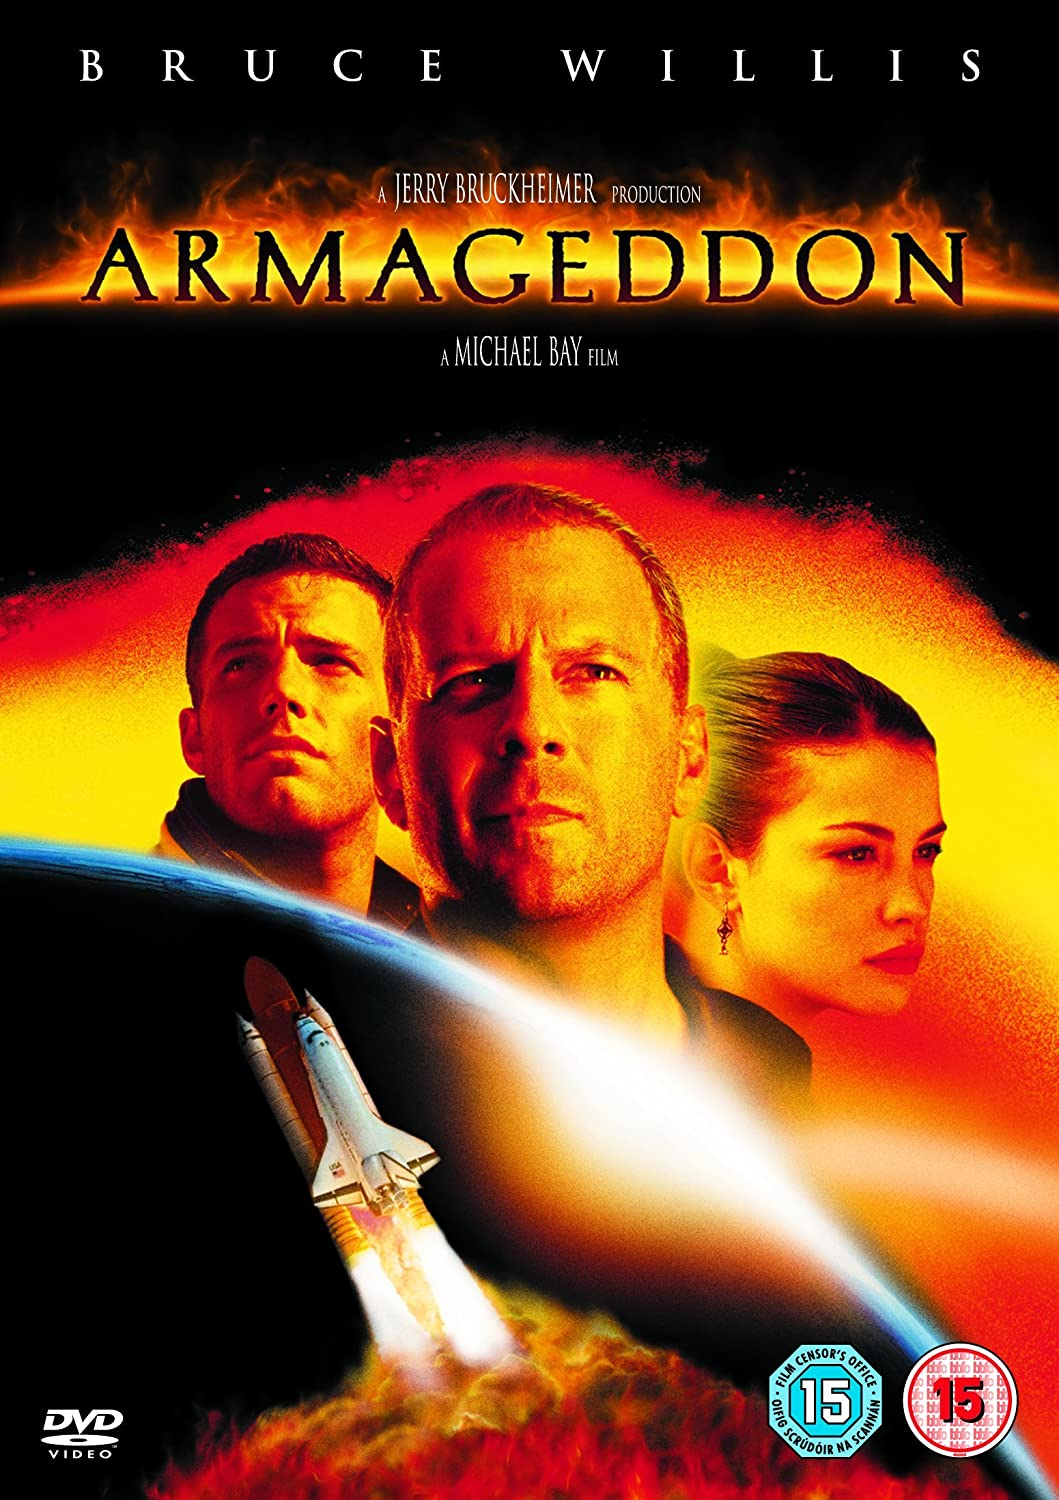 Amazon.com: Armageddon [DVD]: Bruce Willis, Billy Bob Thornton ...